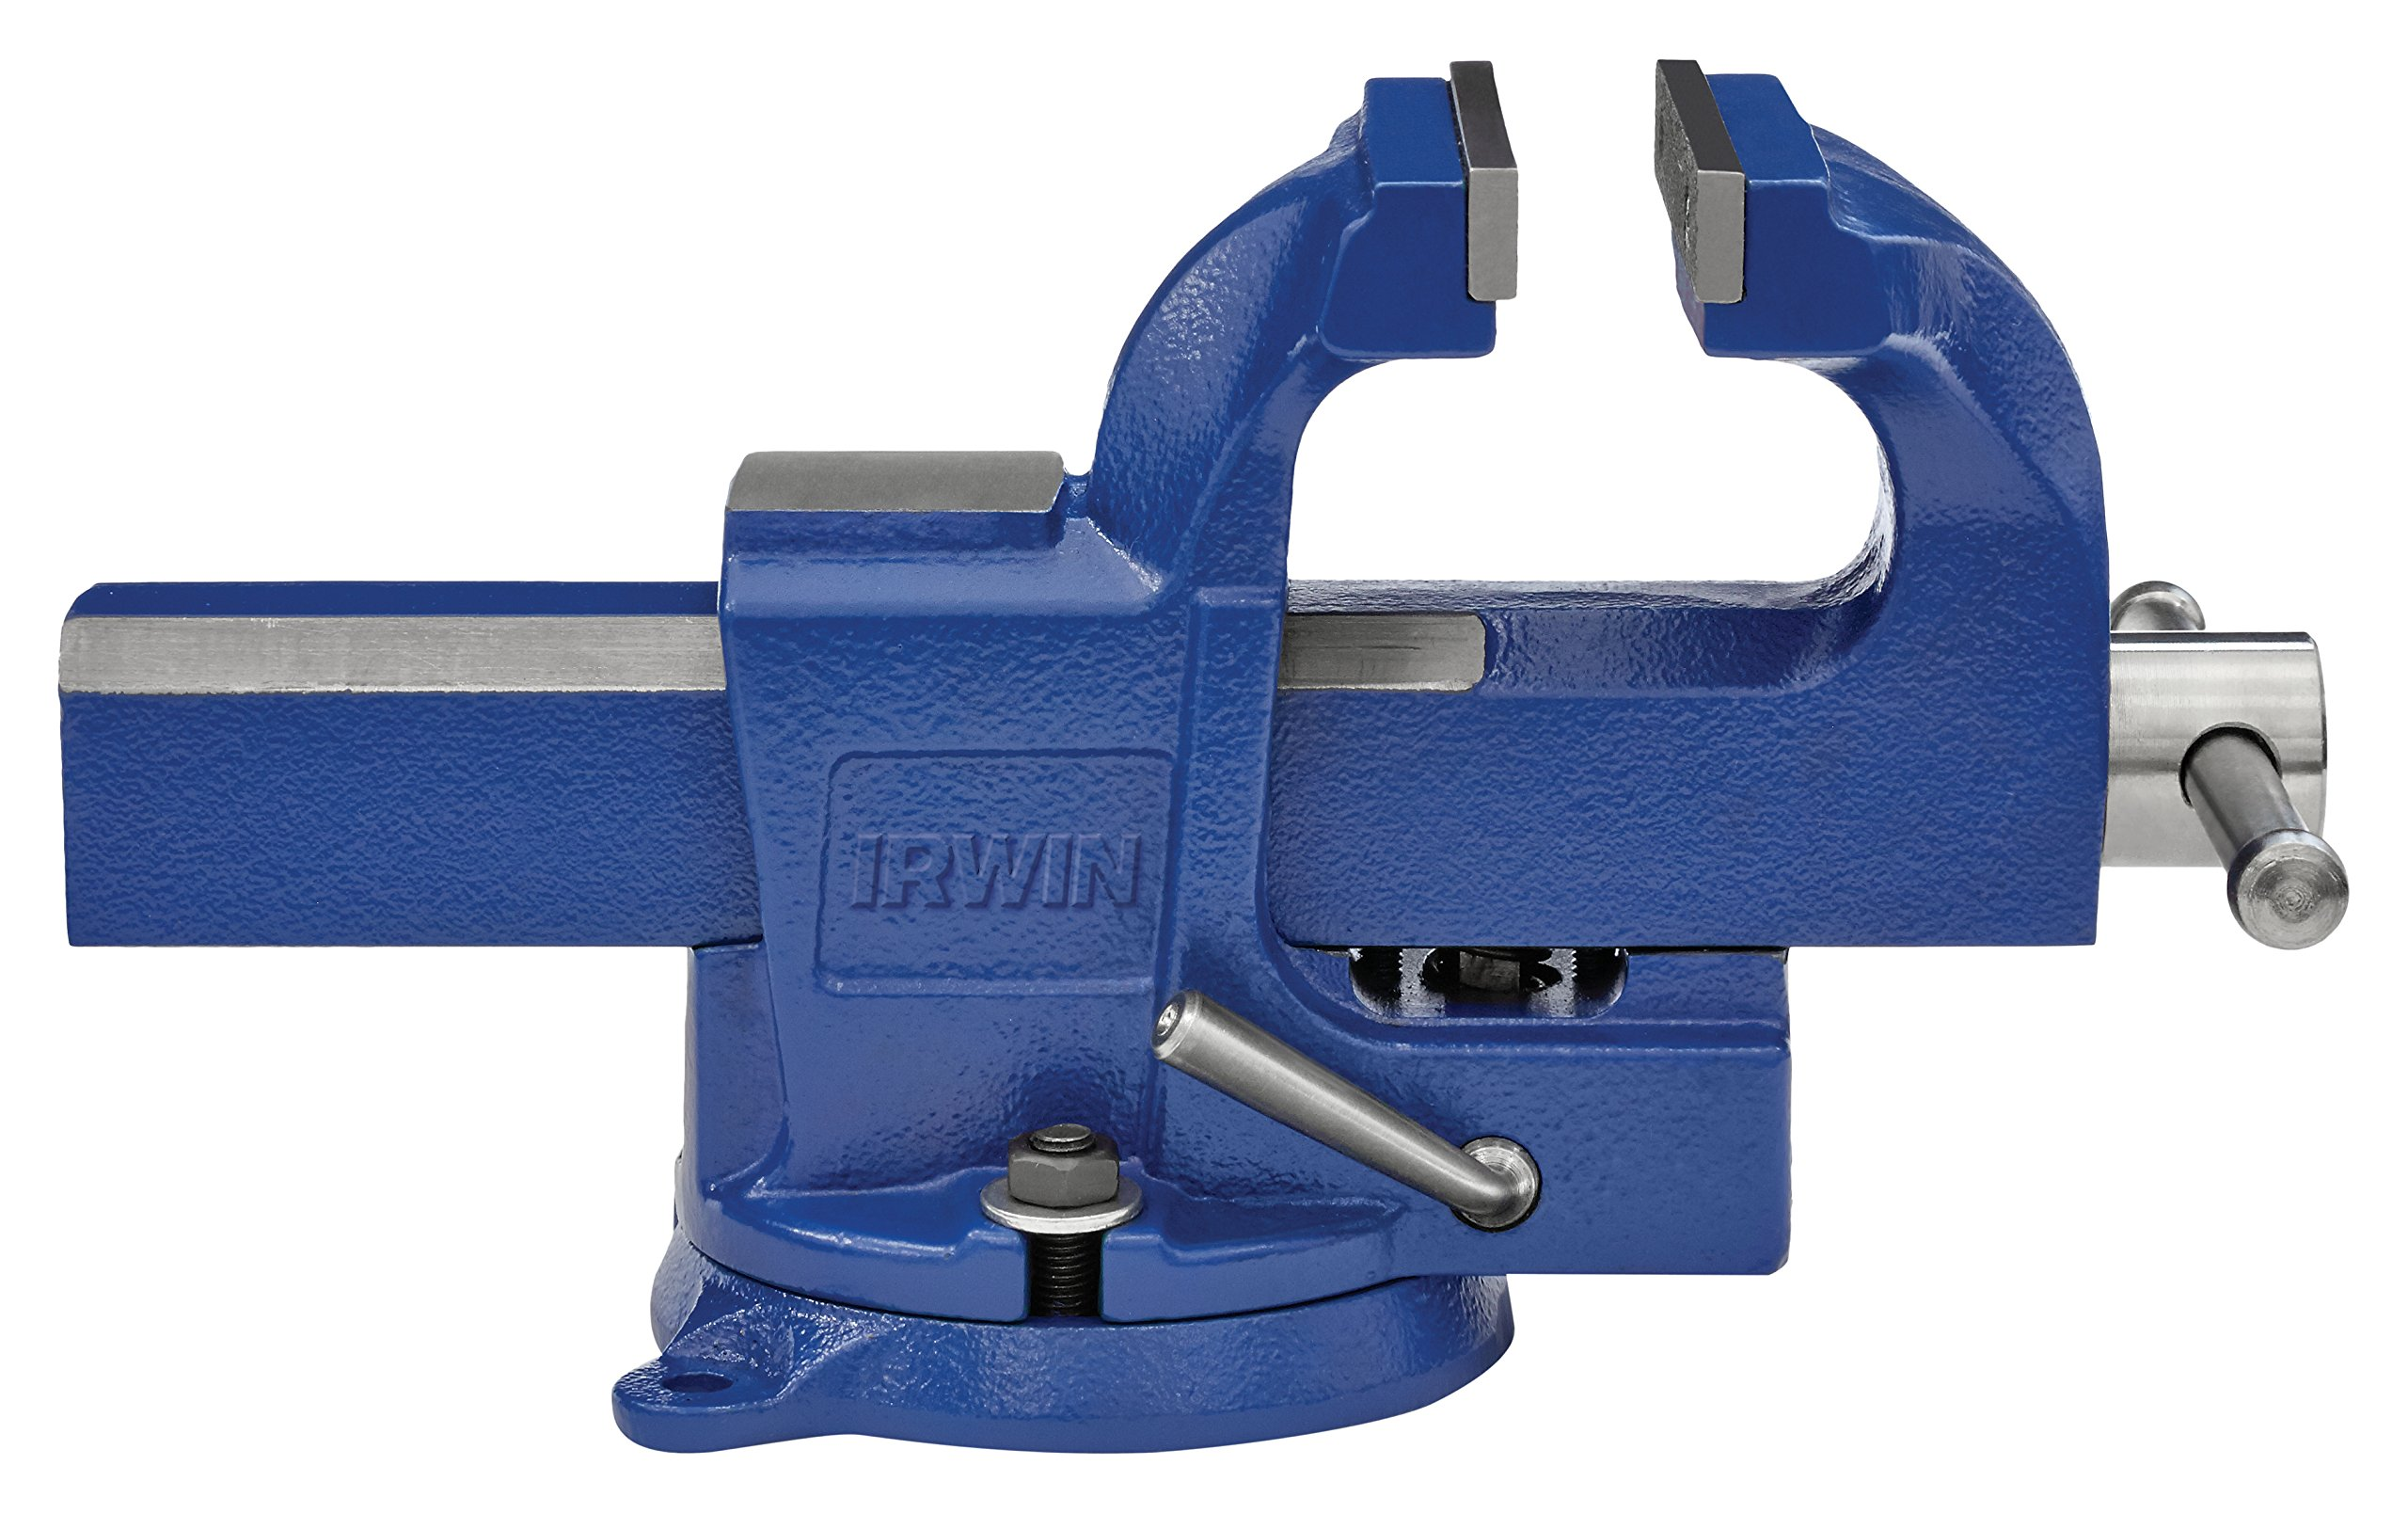 Irwin Tools 1959551 Quick Adjust Vise, 4''